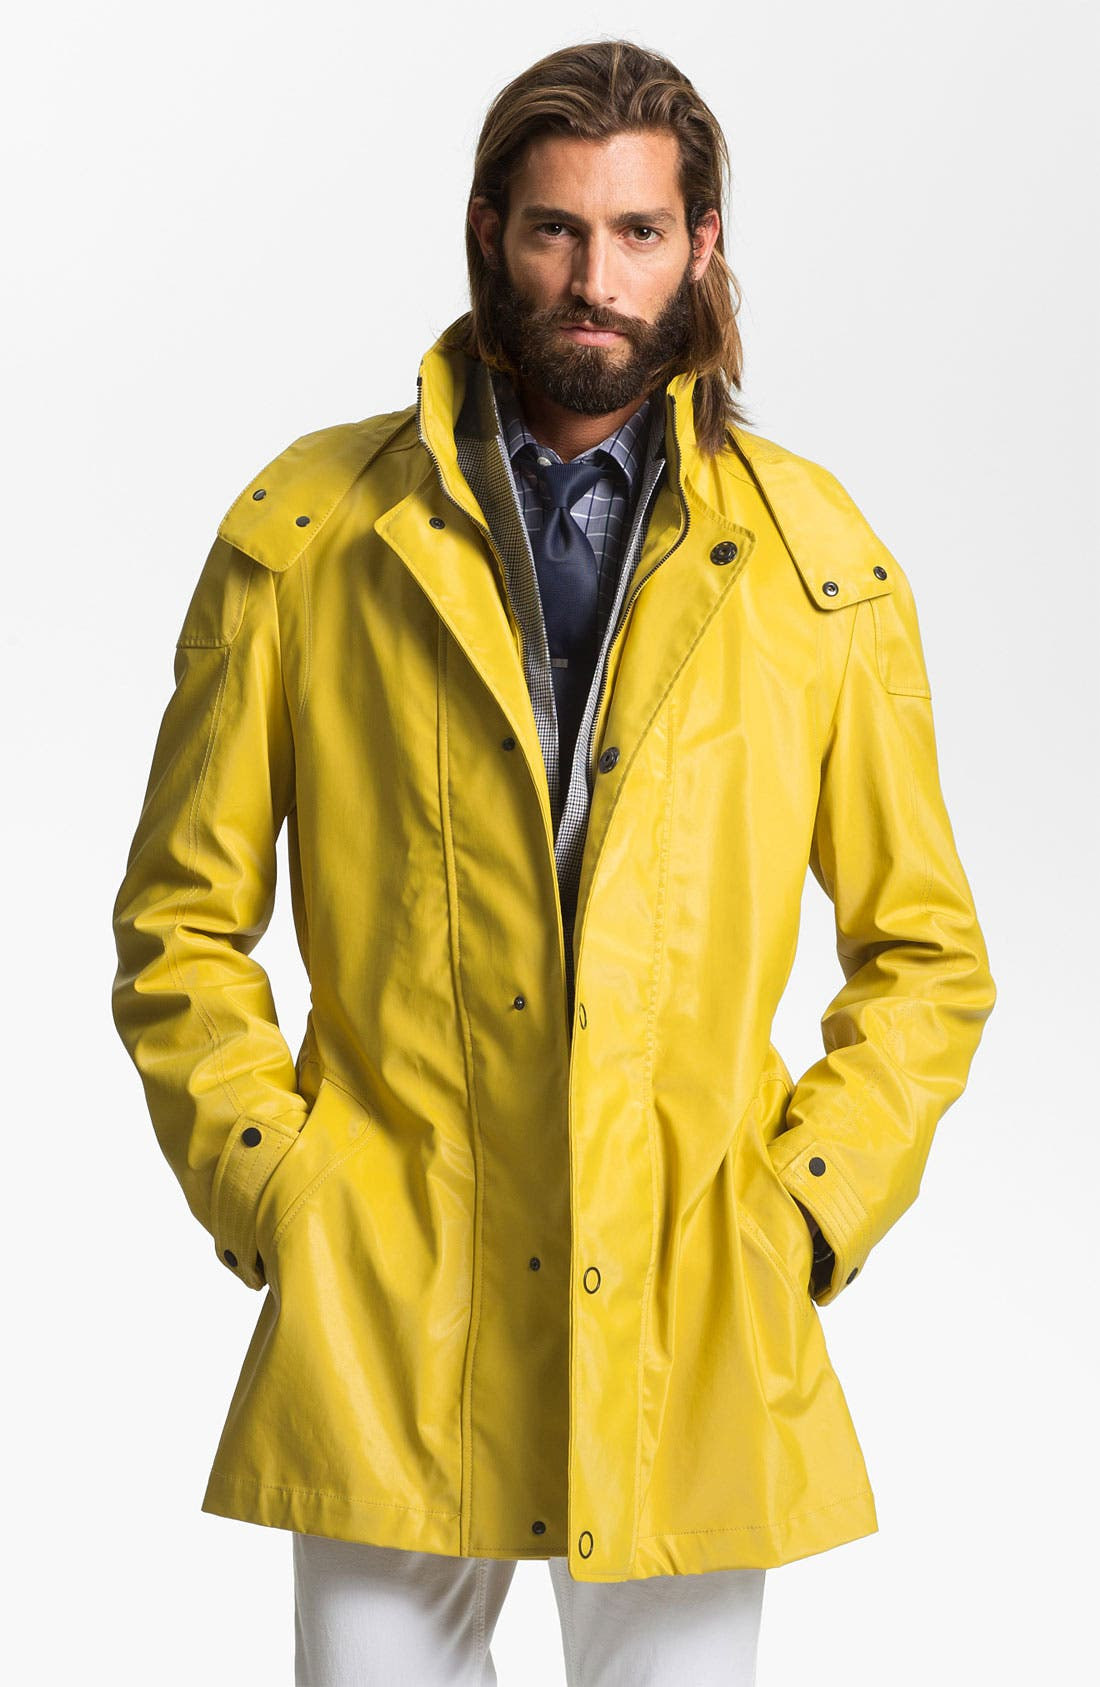 Alternate Image 1 Selected - HUGO 'Marinus' Rain Coat (Online Exclusive)